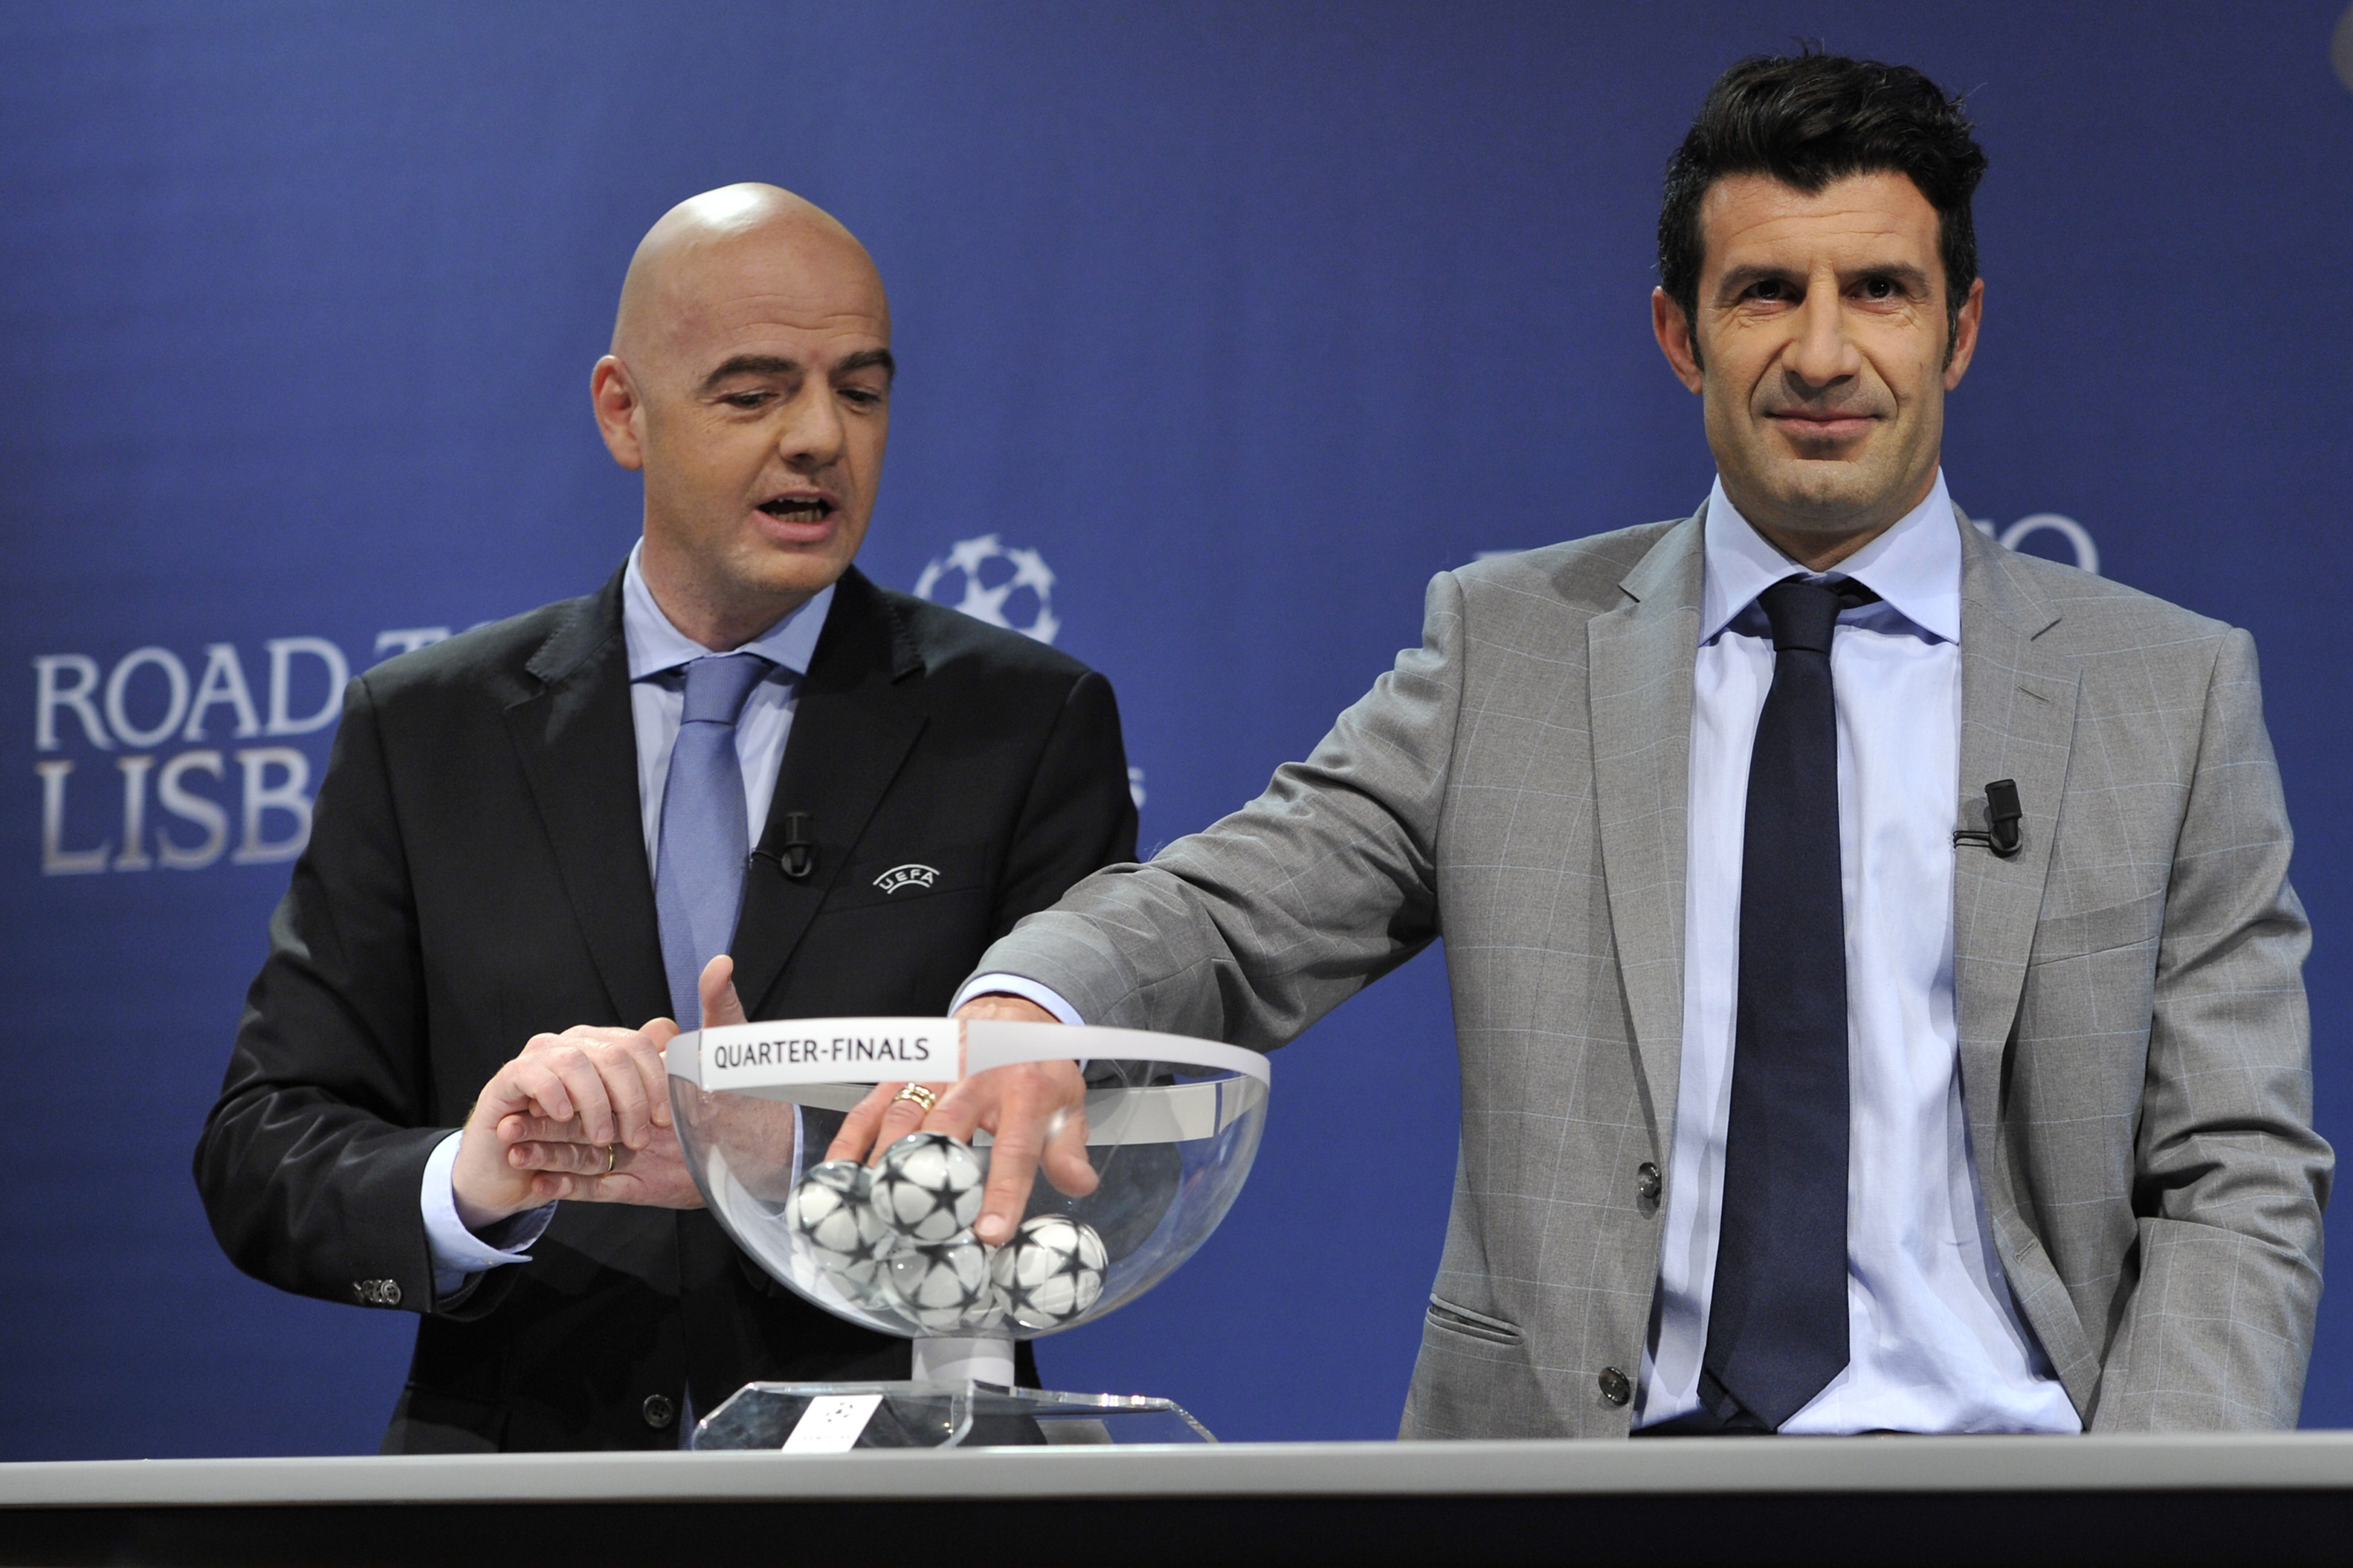 UEFA Champions League group stage draw: Live results